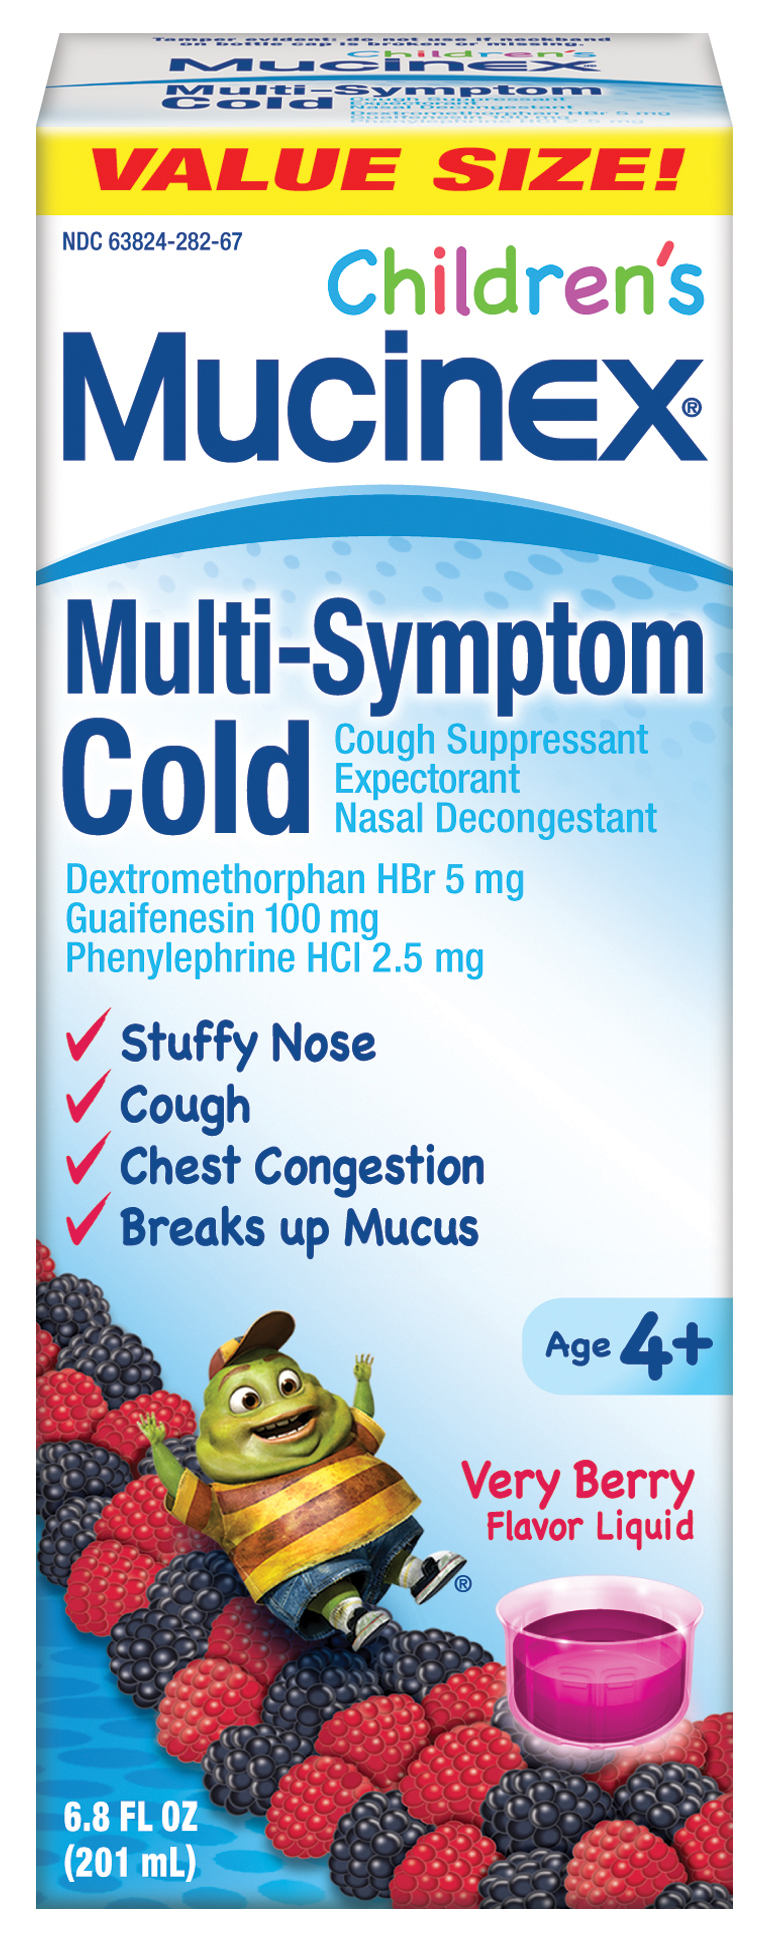 MUCINEX® Children's Multi-Symptom Liquid -Cold Very Berry